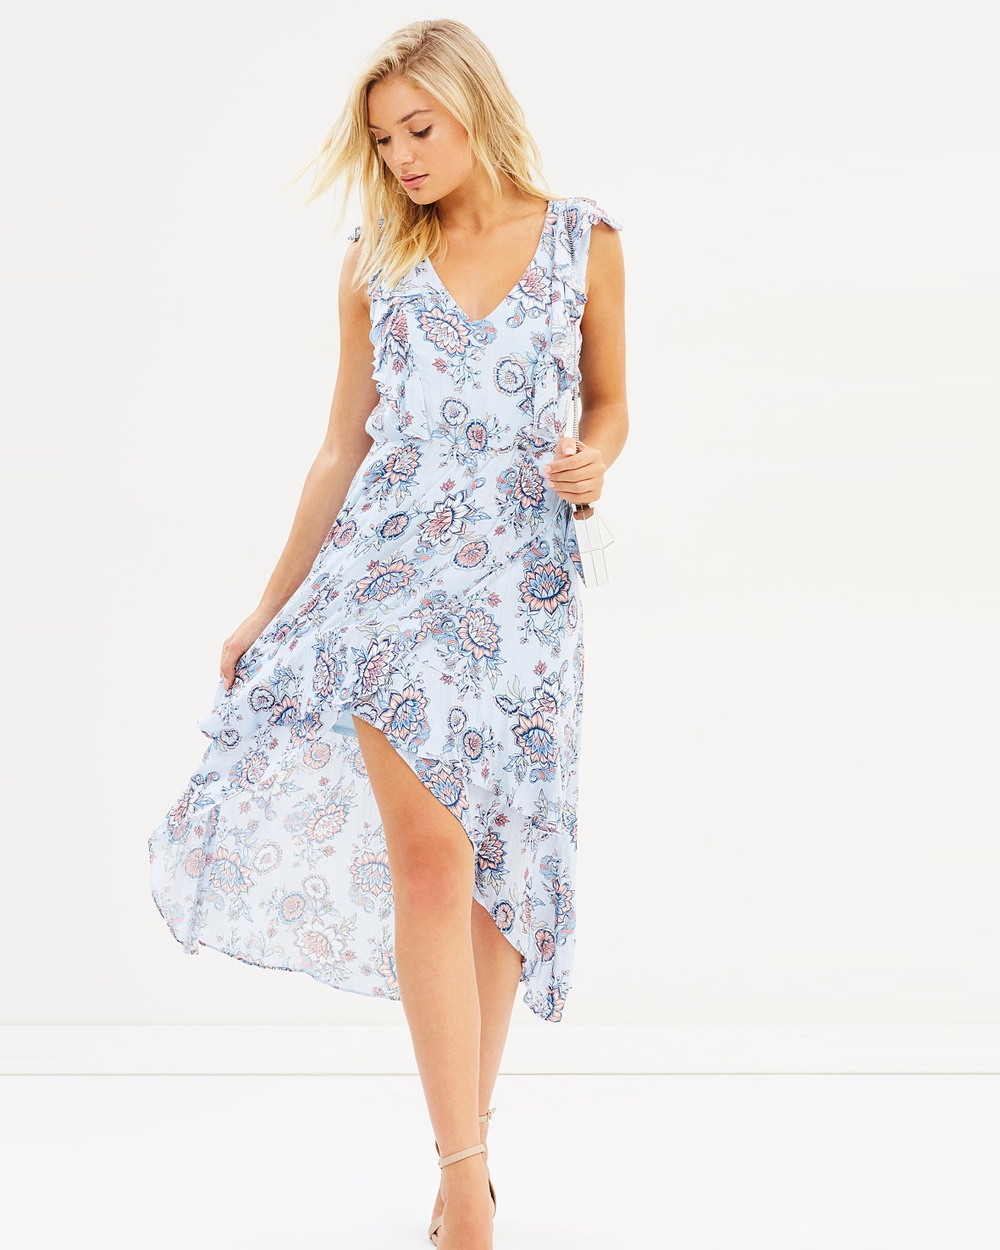 Atmos & Here ICONIC EXCLUSIVE Trixie Wrap Dress Printed Dresses Cashmere Floral ICONIC EXCLUSIVE Trixie Wrap Dress